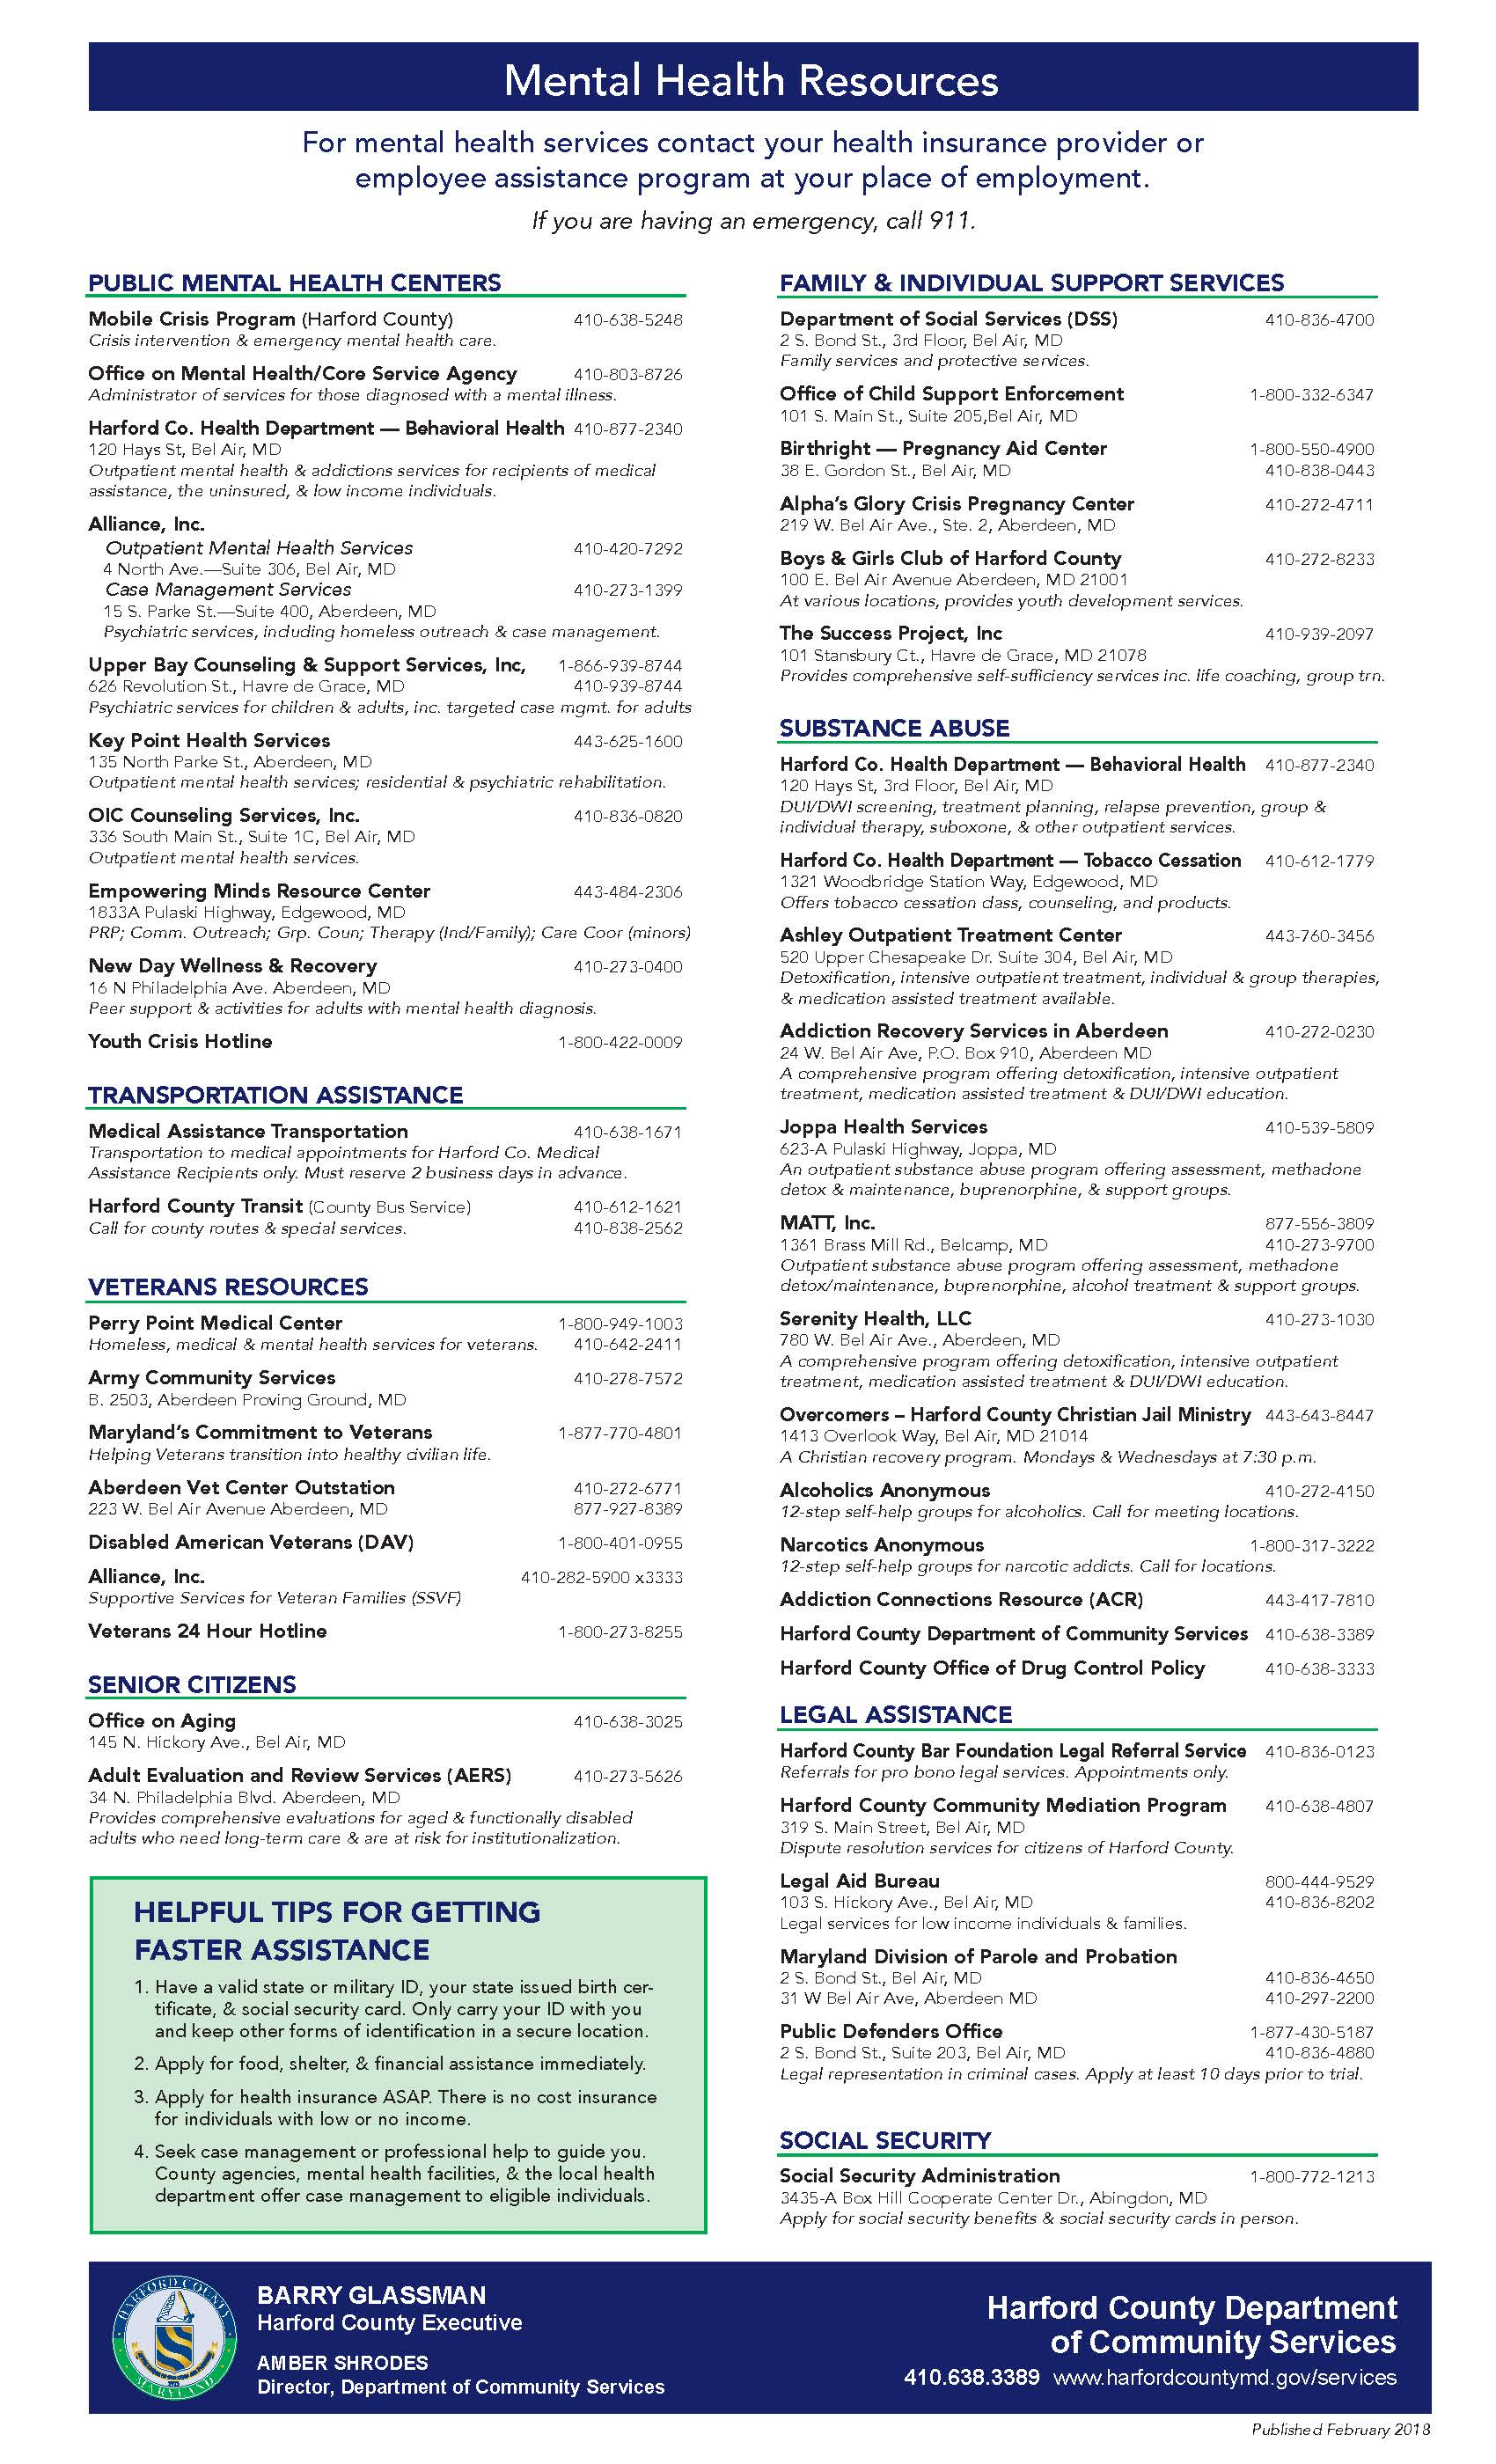 Harford County Mental Health Resource List 2